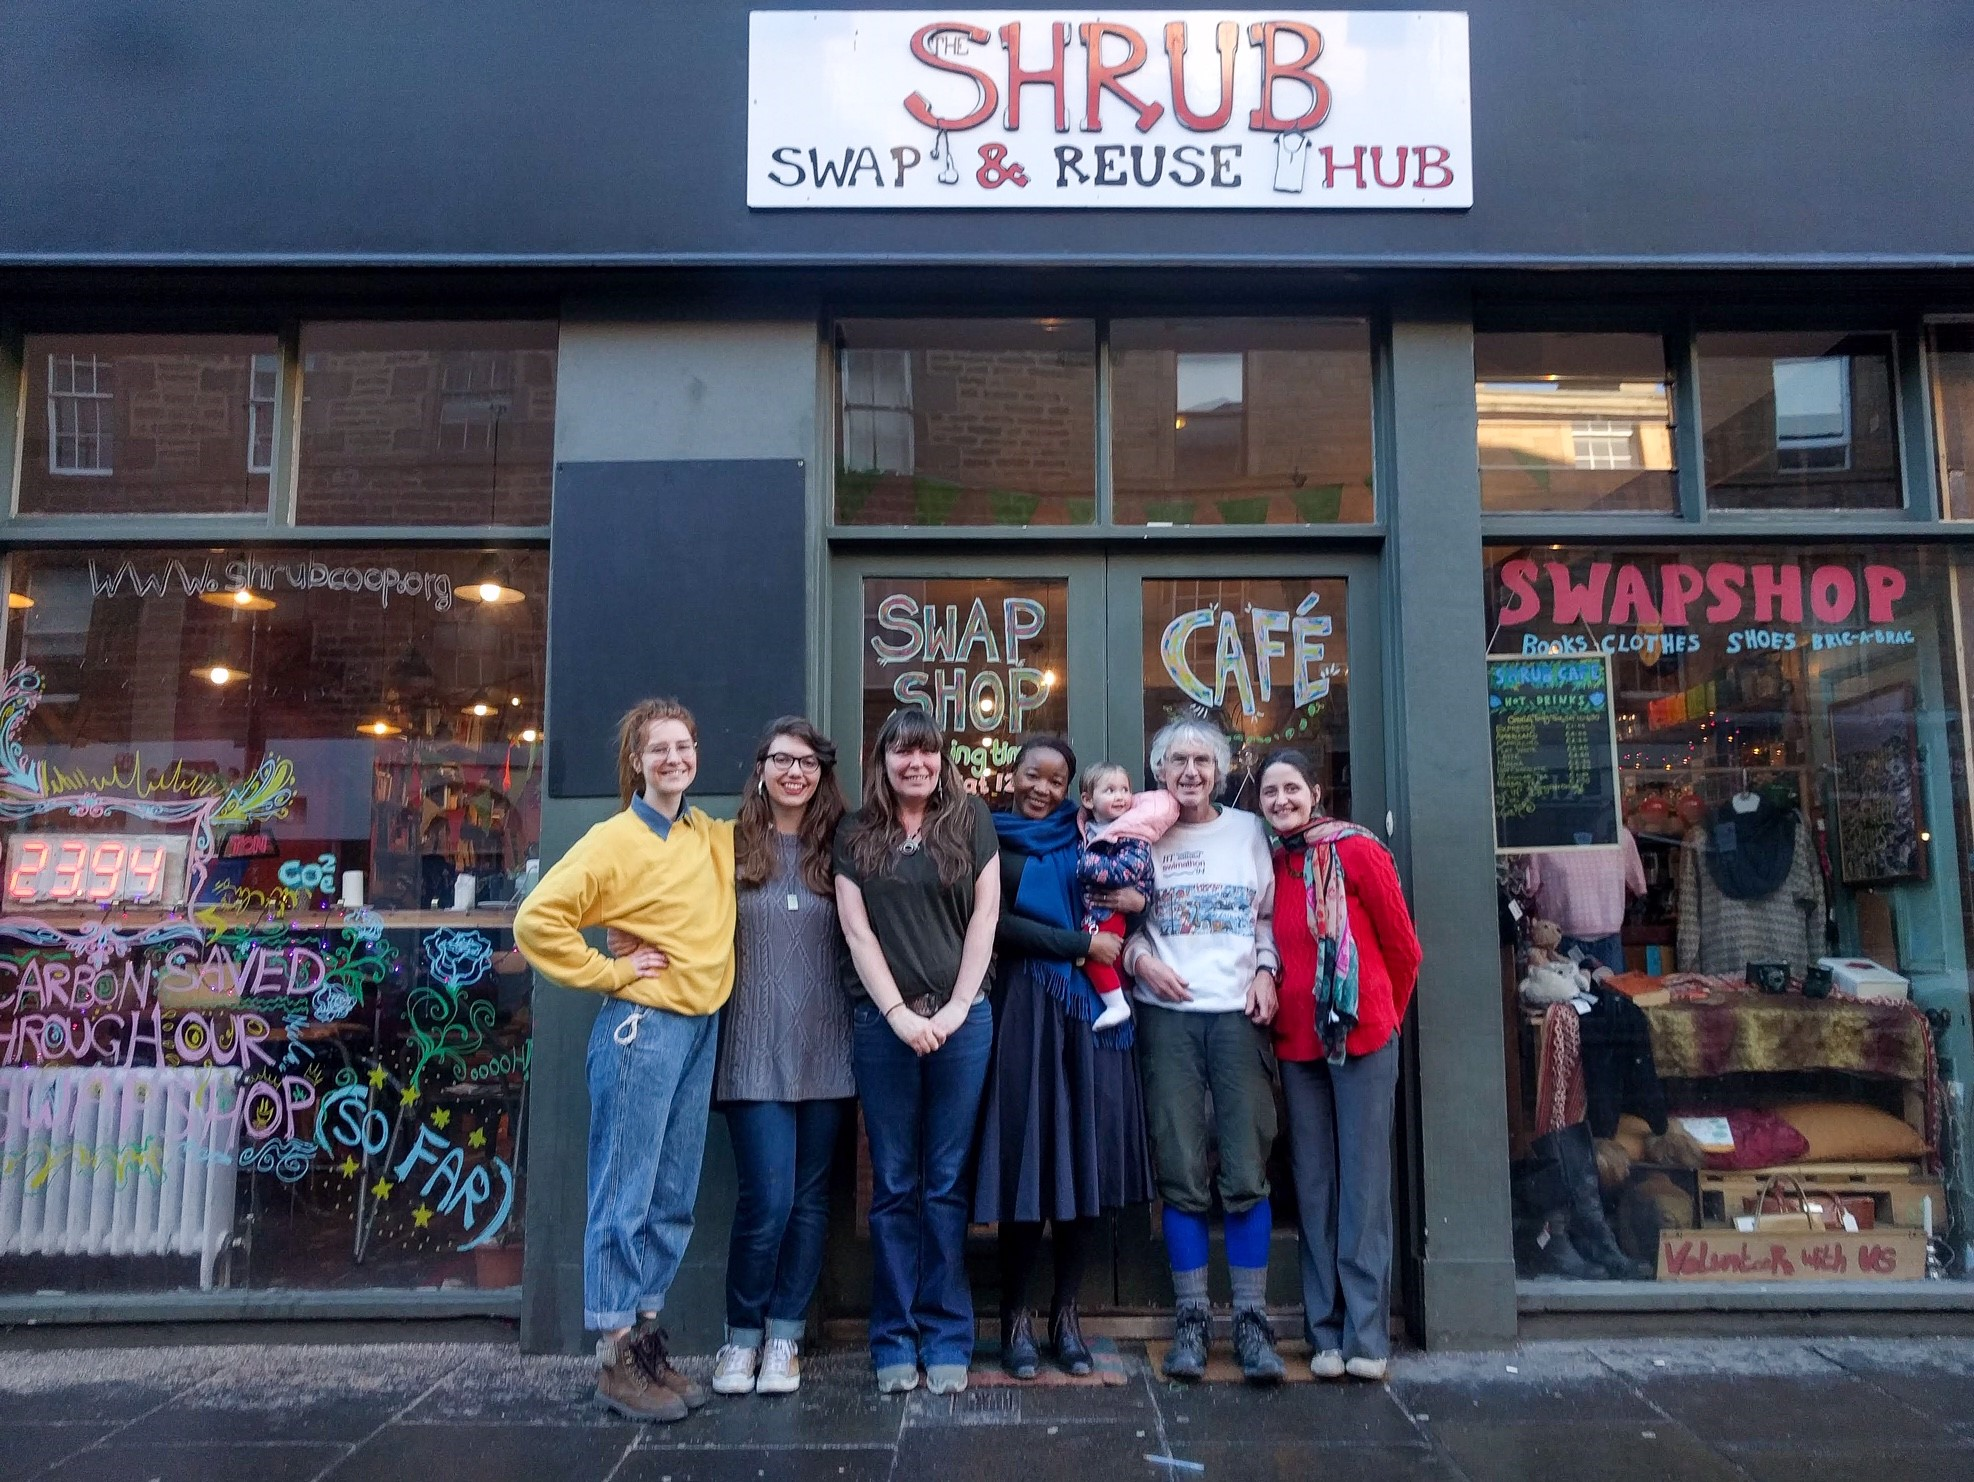 Swap and Reuse Hub is run by students at the University of Edinburgh